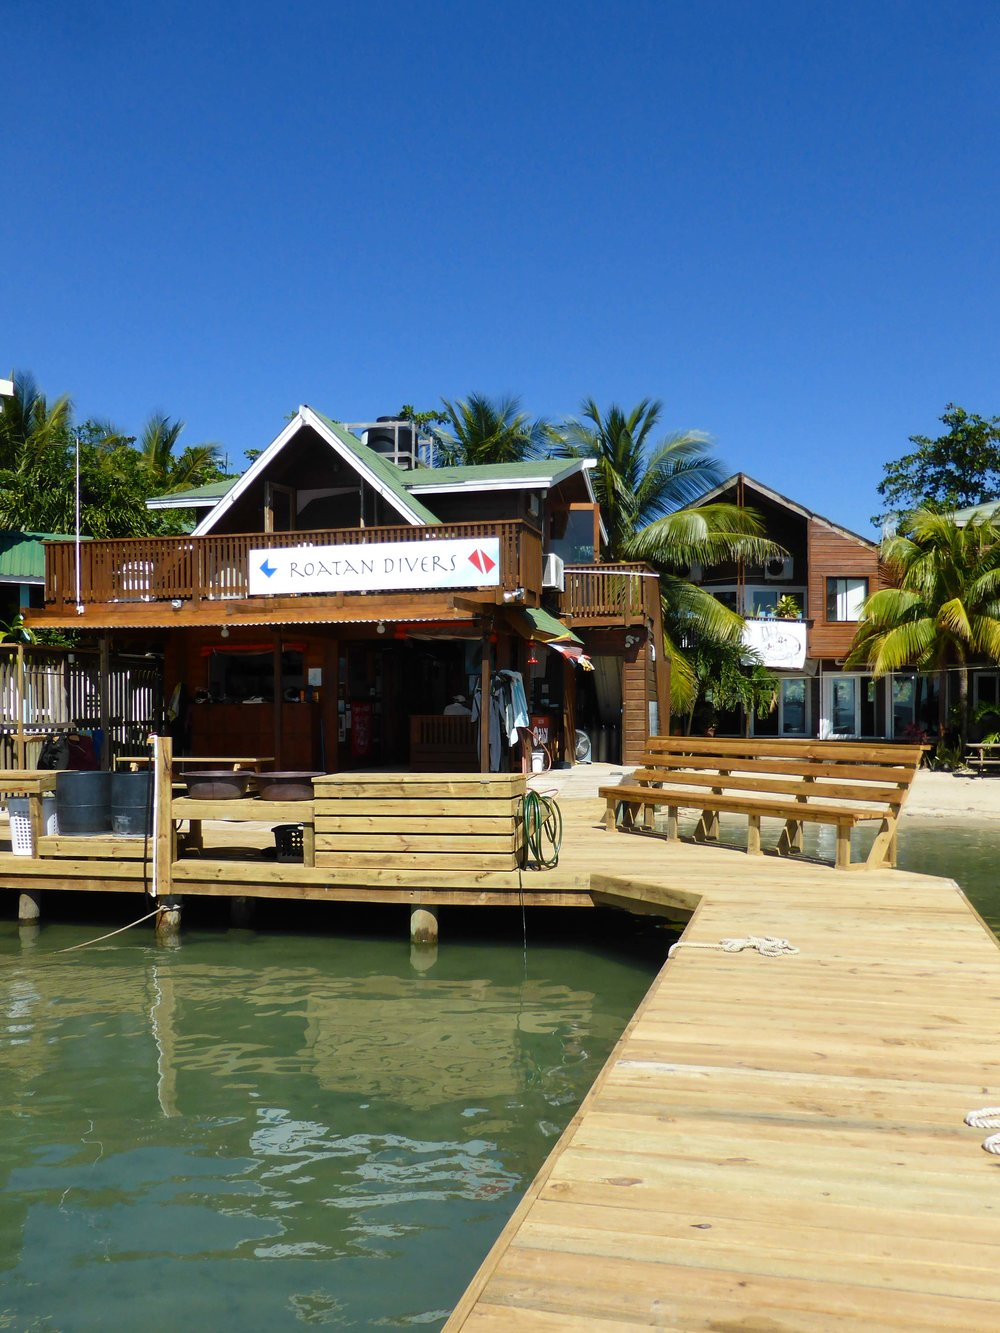 Roatan Divers dock